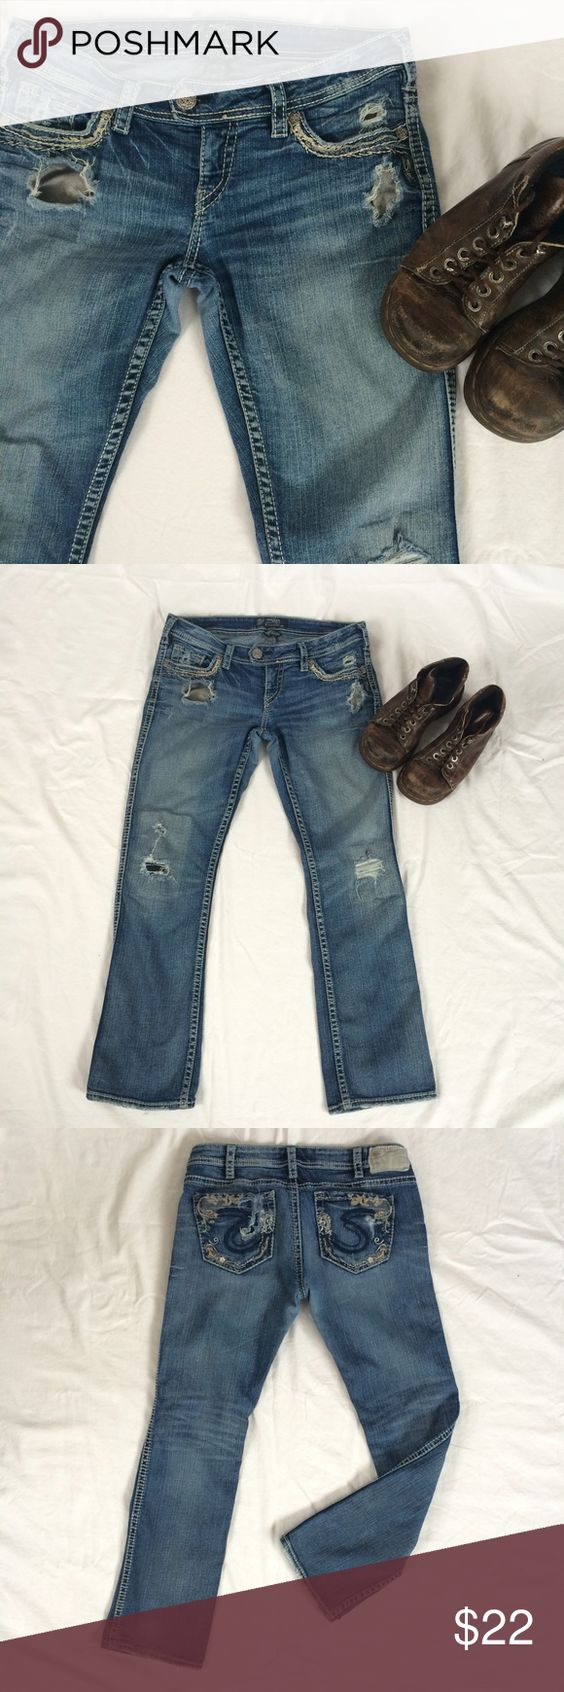 Women's Silver Jeans Size 31/31 | D, Babies and Boots